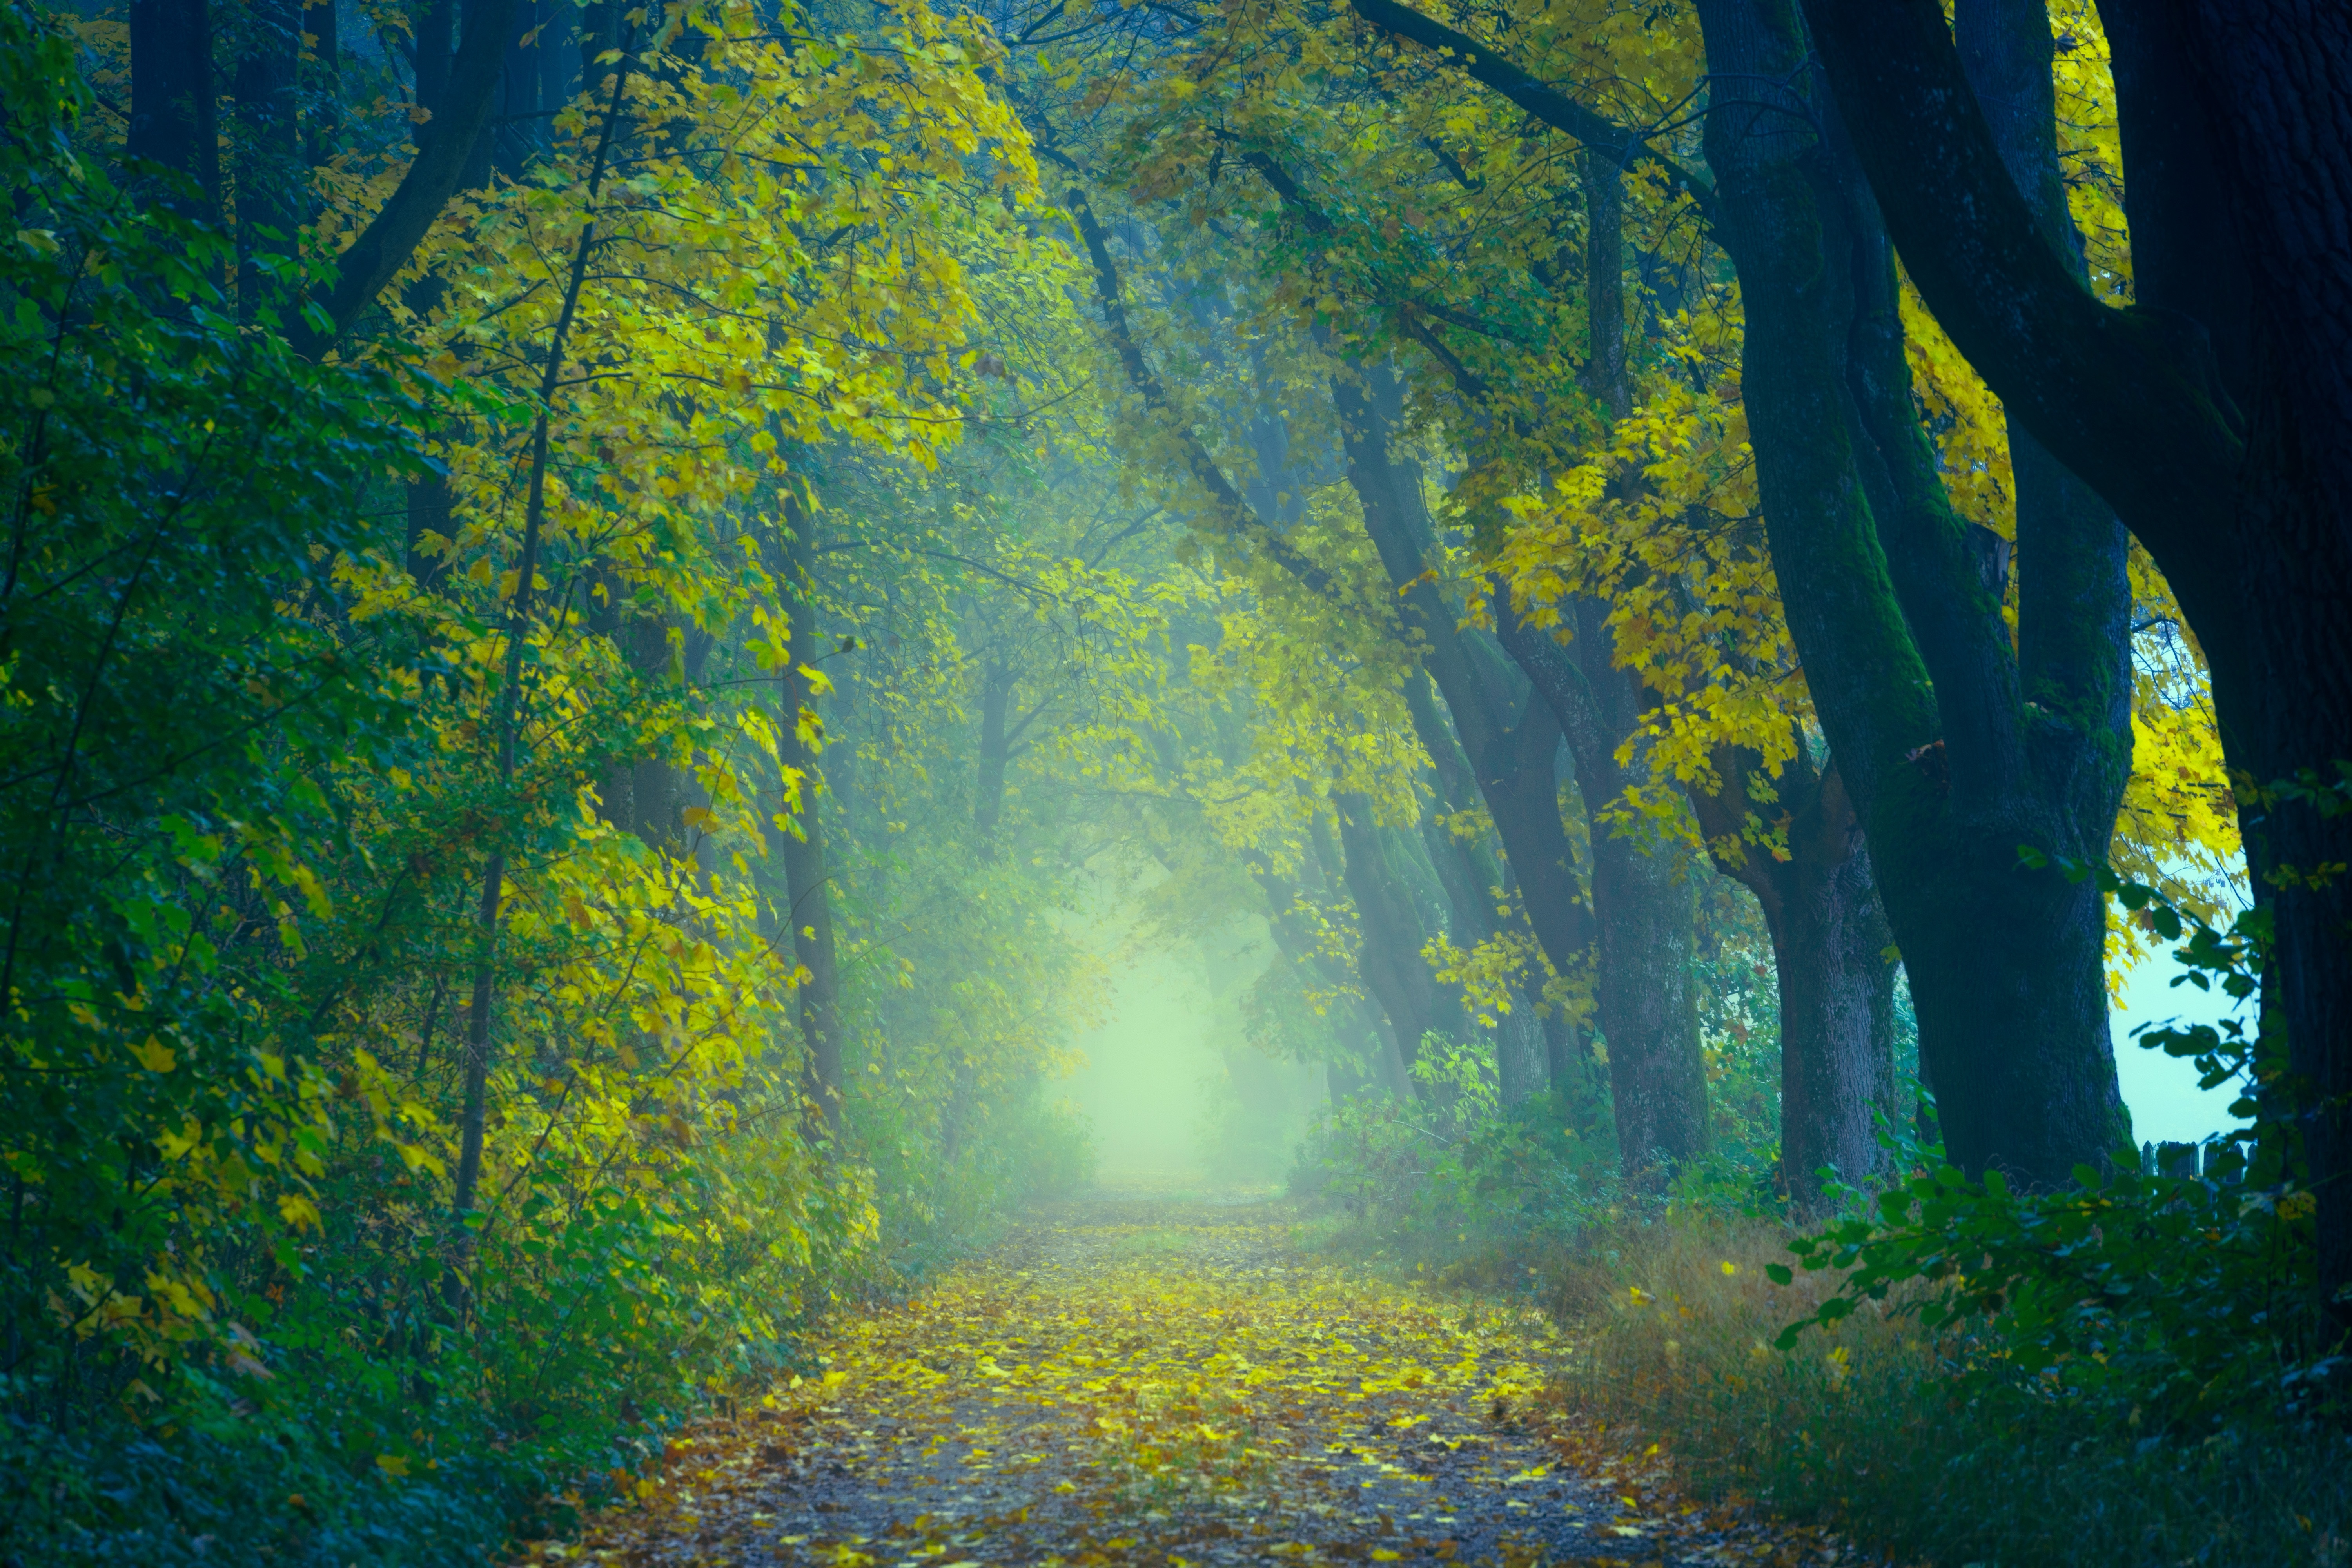 140654 download wallpaper Nature, Autumn, Forest, Fog, Blur, Smooth, Path, Foliage screensavers and pictures for free